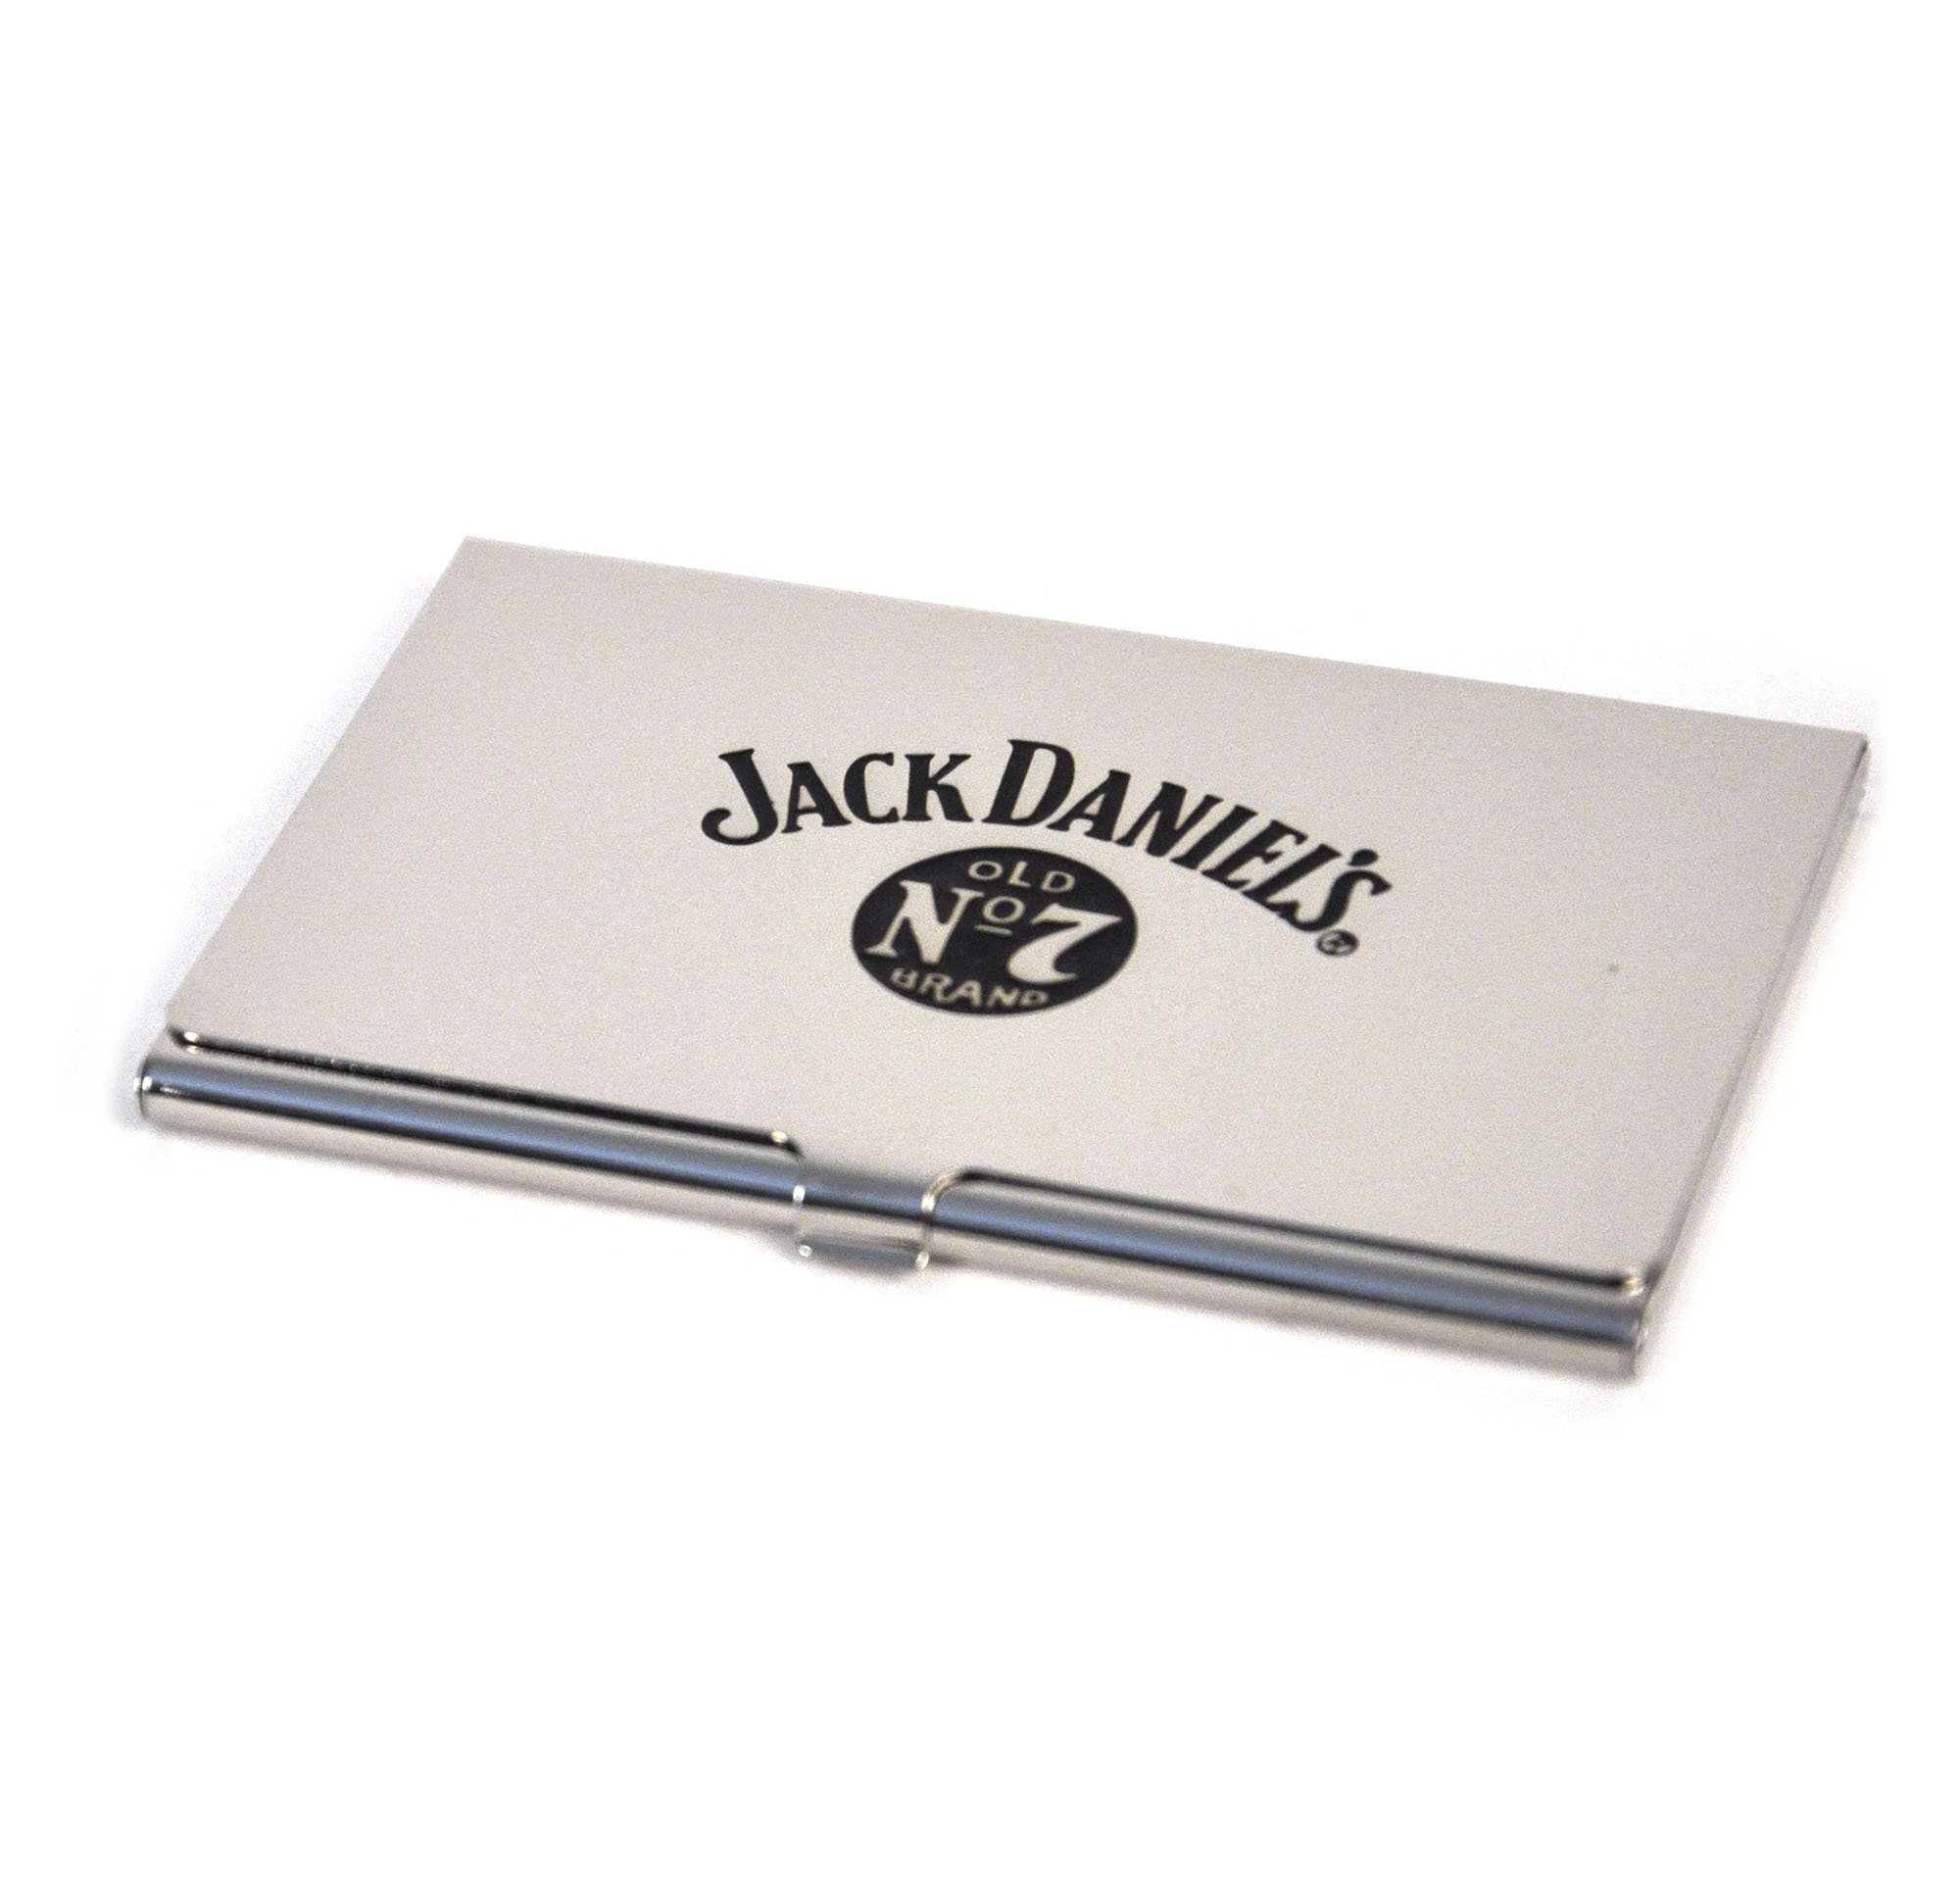 Jack Daniels Stainless Steel Business Card Case | Pink Cat Shop